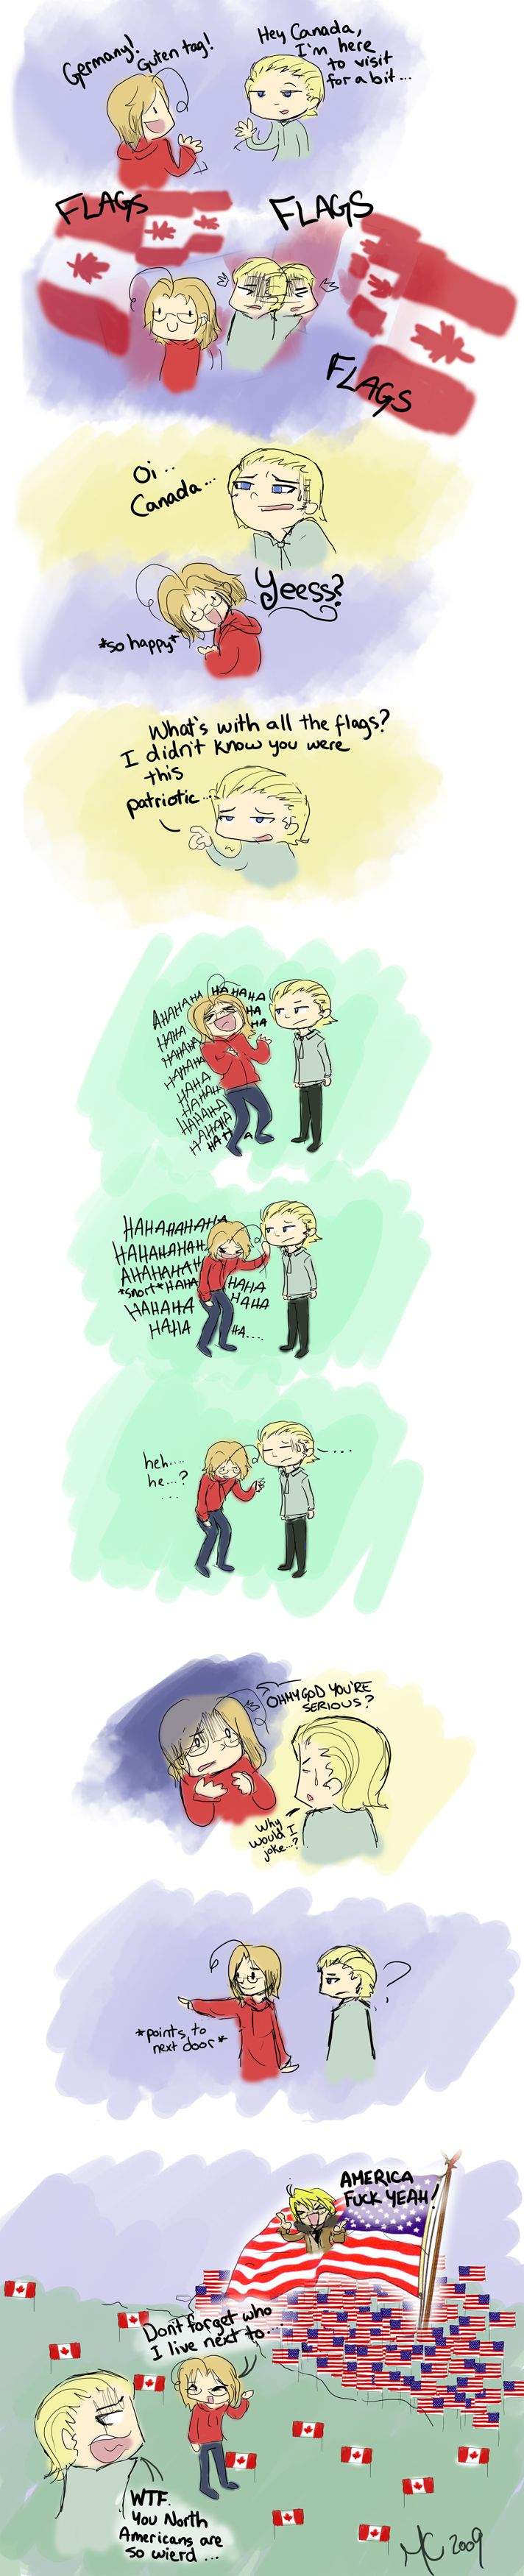 """Germany's visit -APH by KittyMira.deviantart.com on @deviantART - lol Yep, that's certainly true enough. The funny thing is that we Canadians see our flag-waving patriotism as """"reasonable"""" and """"understated"""" compared to the States :P"""